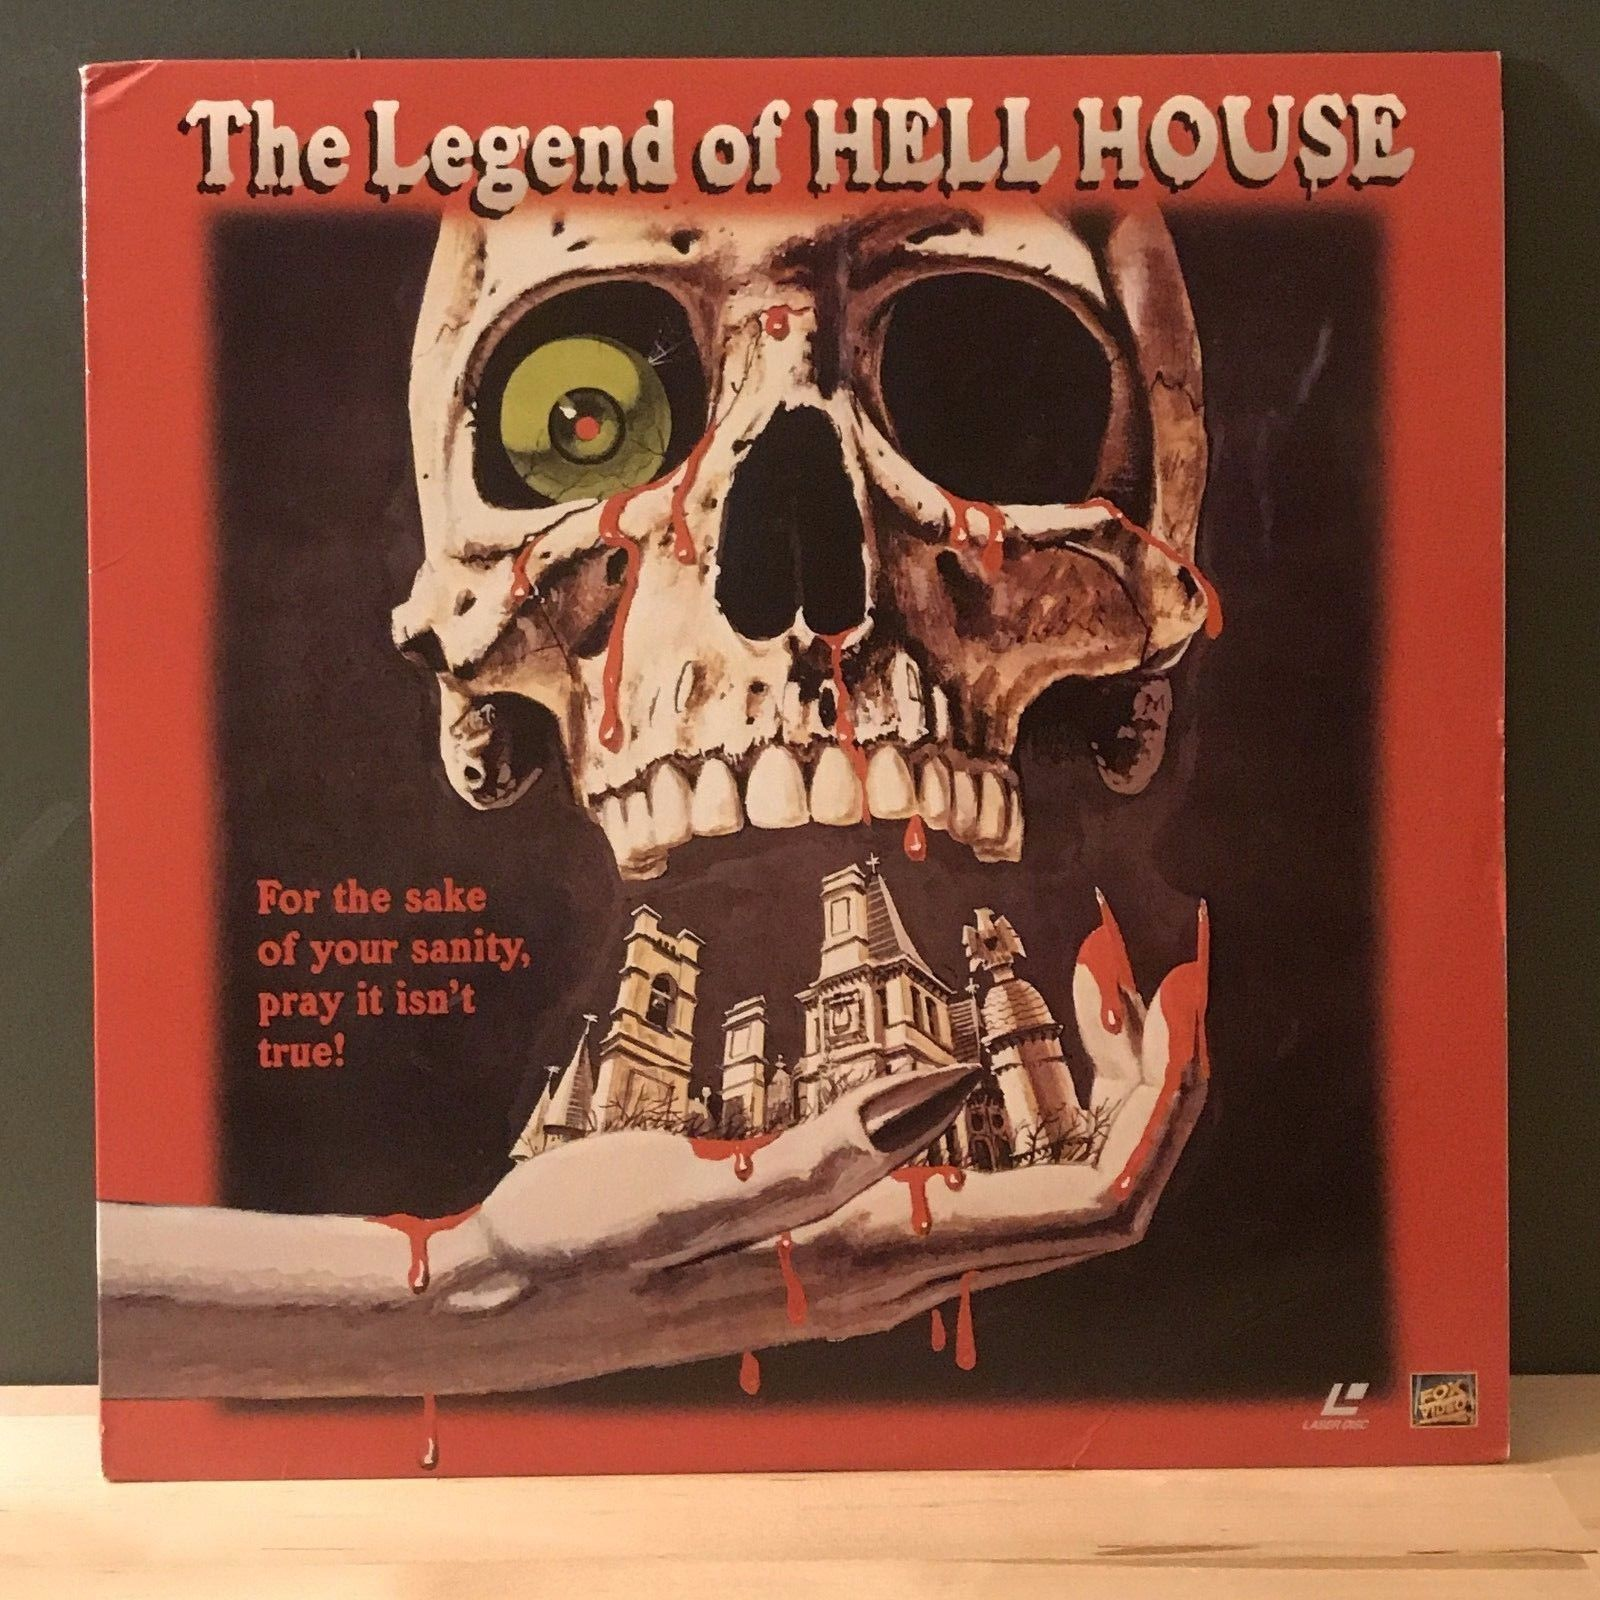 ACTORS: Pamela Franklin, Roddy McDowell<br>LASER DISC TITLE: The Legend of Hell House - Mediaworks Records